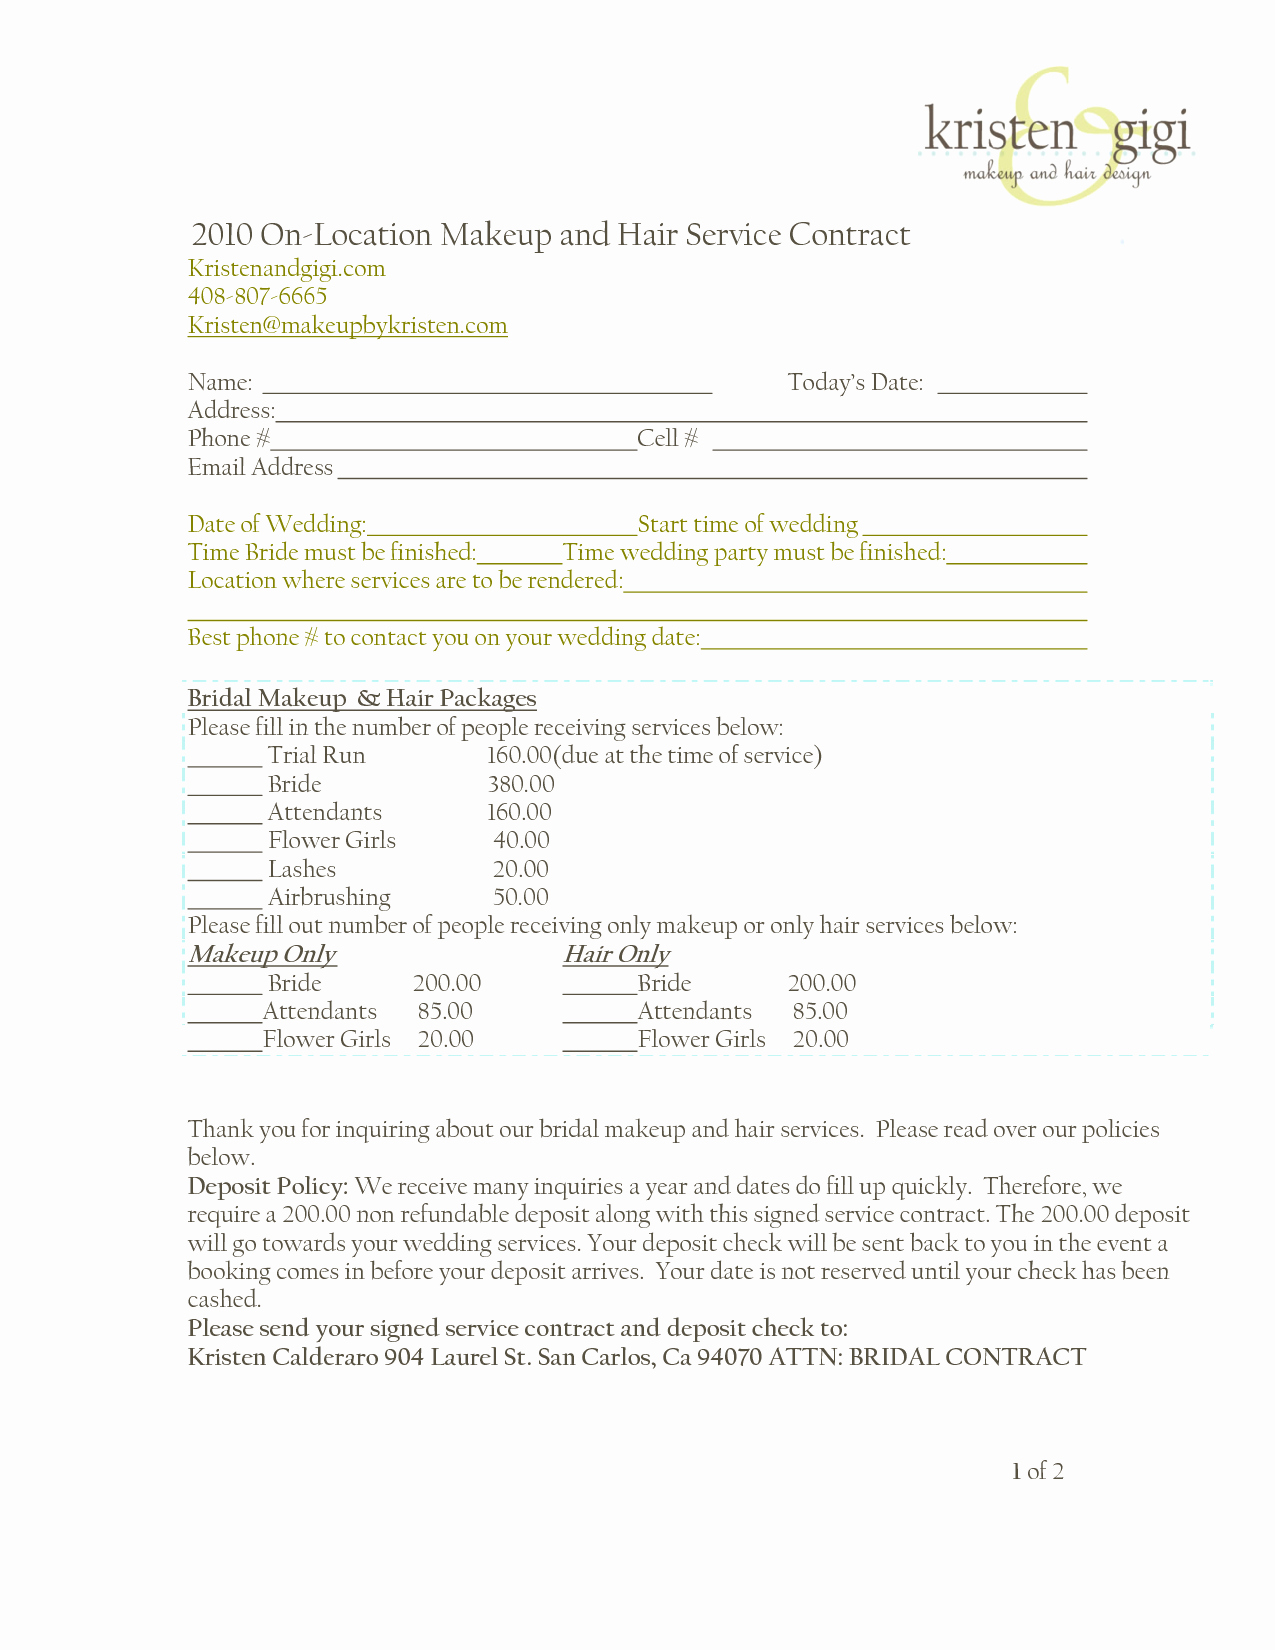 Freelance Makeup Artist Contract Template Unique Bridalhaircotract